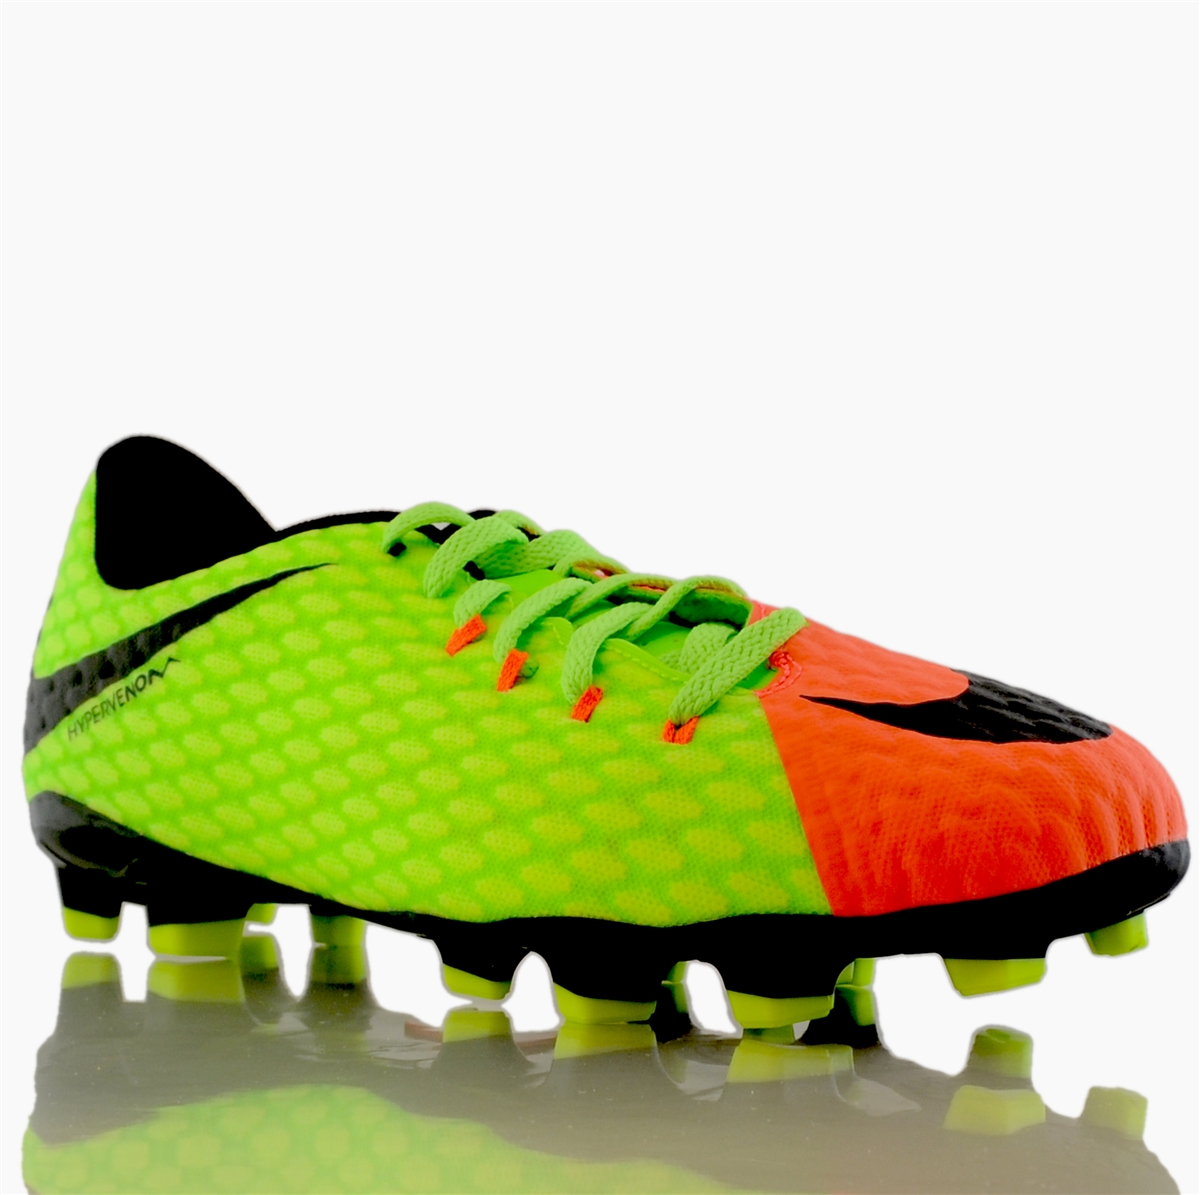 acc63db4c3c Nike Hypervenom Phelon III FG Youth Soccer Cleats (Electric Green Black Hyper  Orange Volt)